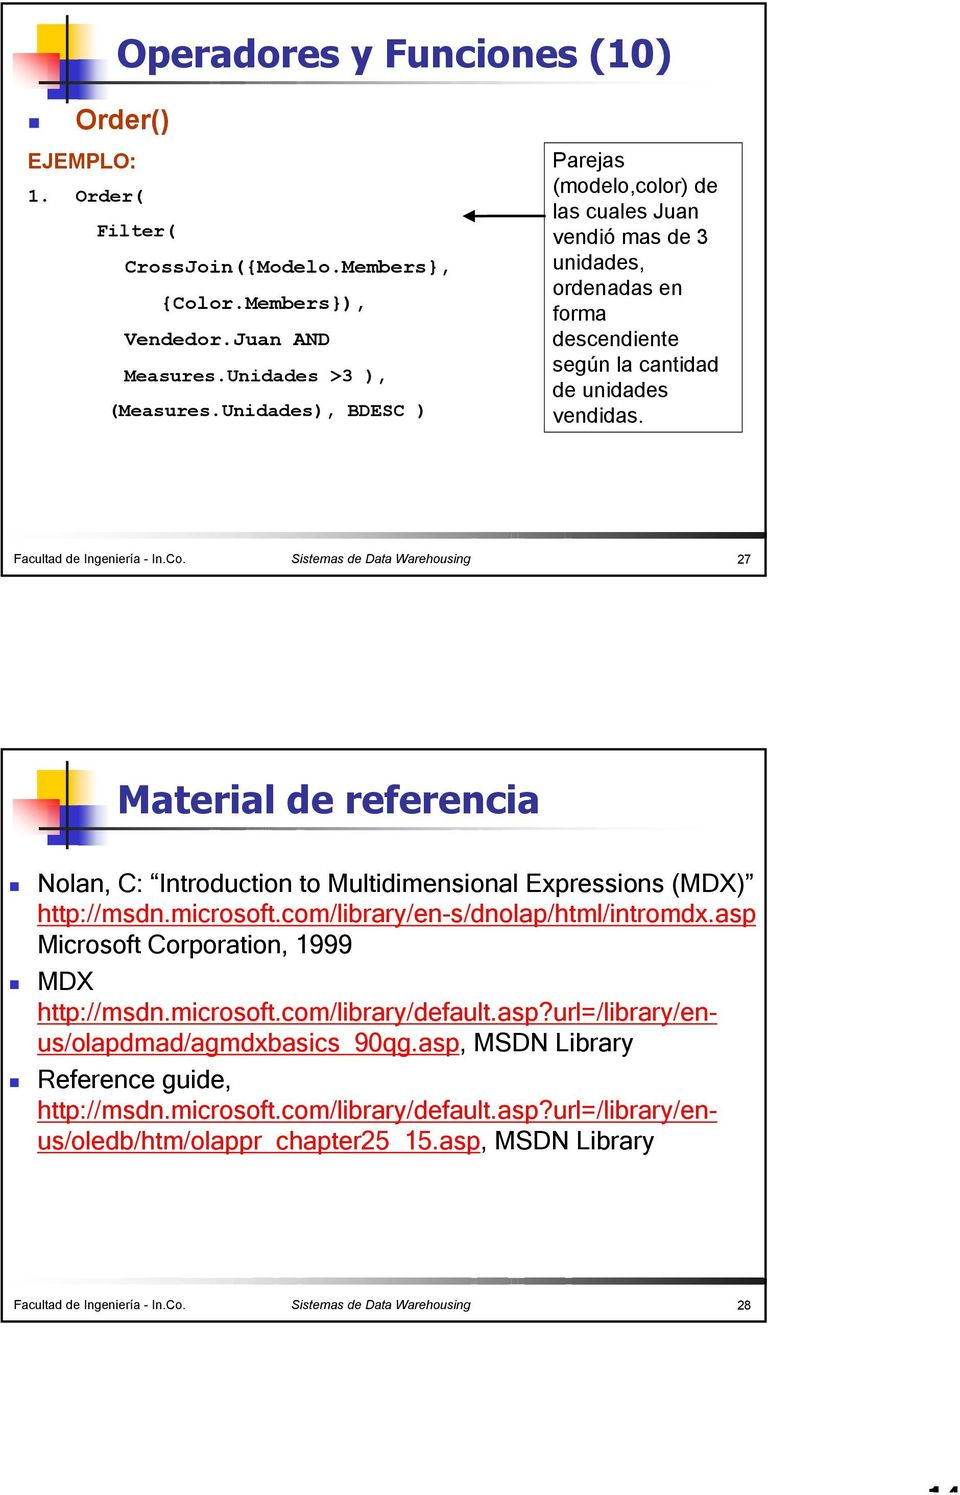 Sistemas de Data Warehousing 27 Material de referencia Nolan, C: Introduction to Multidimensional Expressions (MDX) http://msdn.microsoft.com/library/en-s/dnolap/html/intromdx.